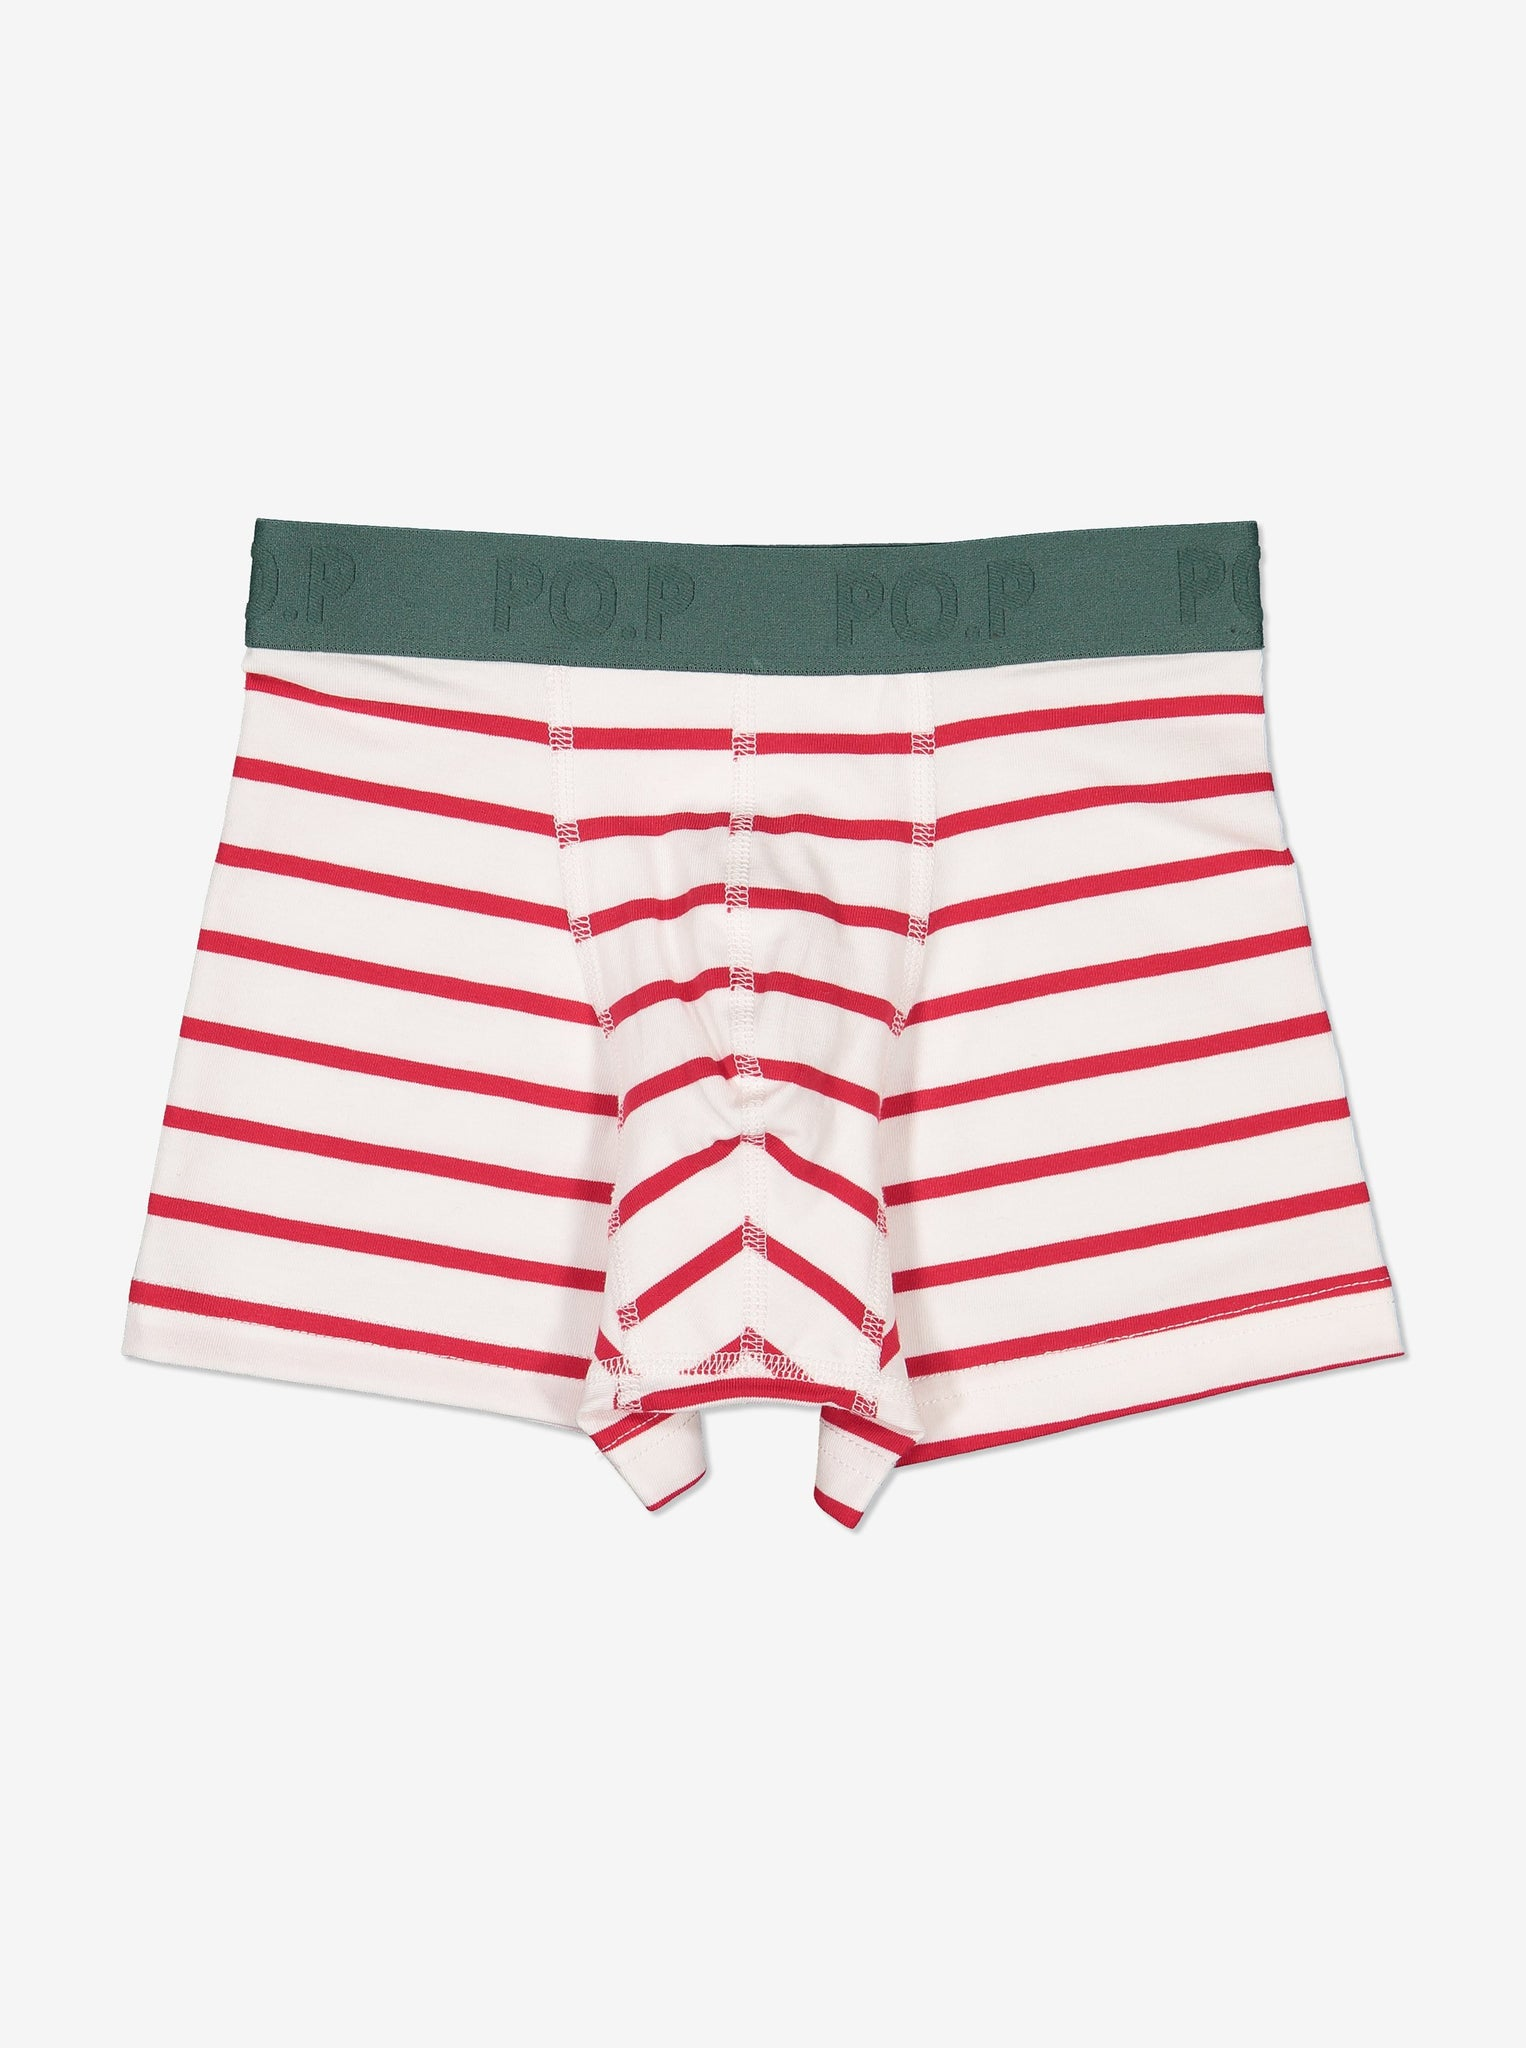 Boys Striped Boxer Shorts 1-12years Natural Boy